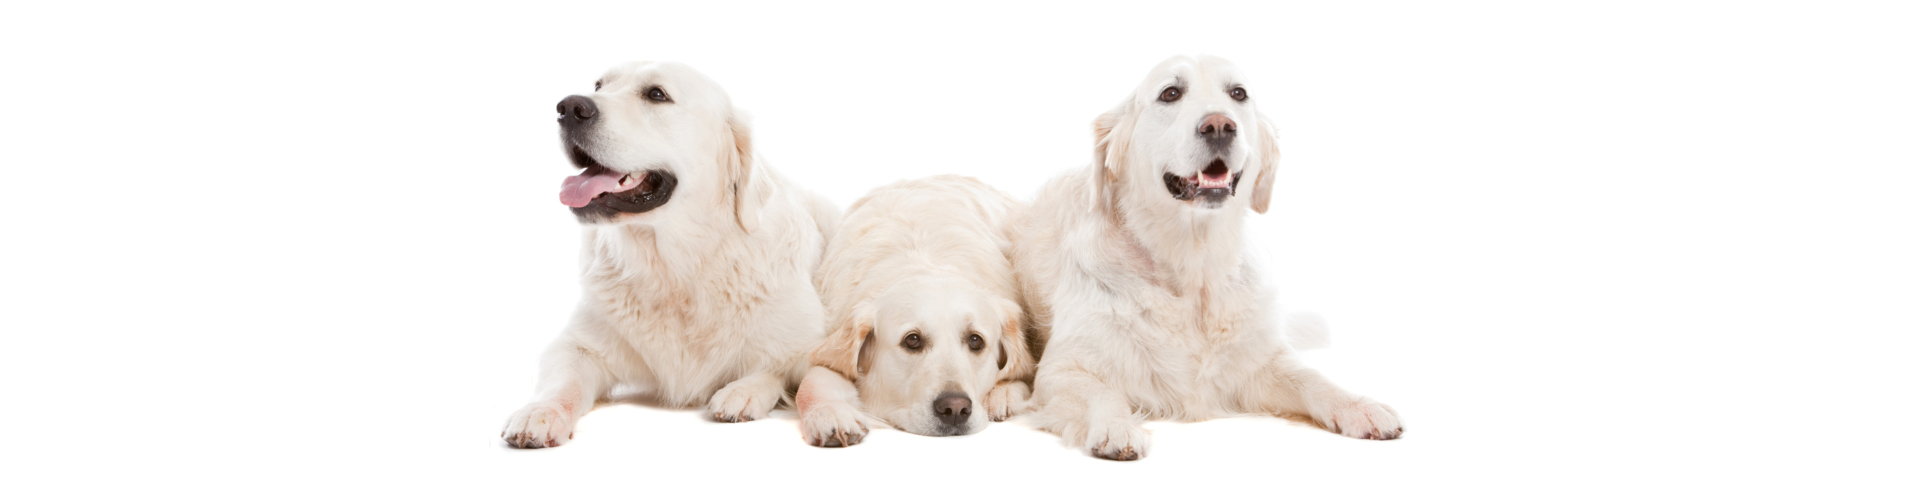 Three golden retriever dogs lying together on white background